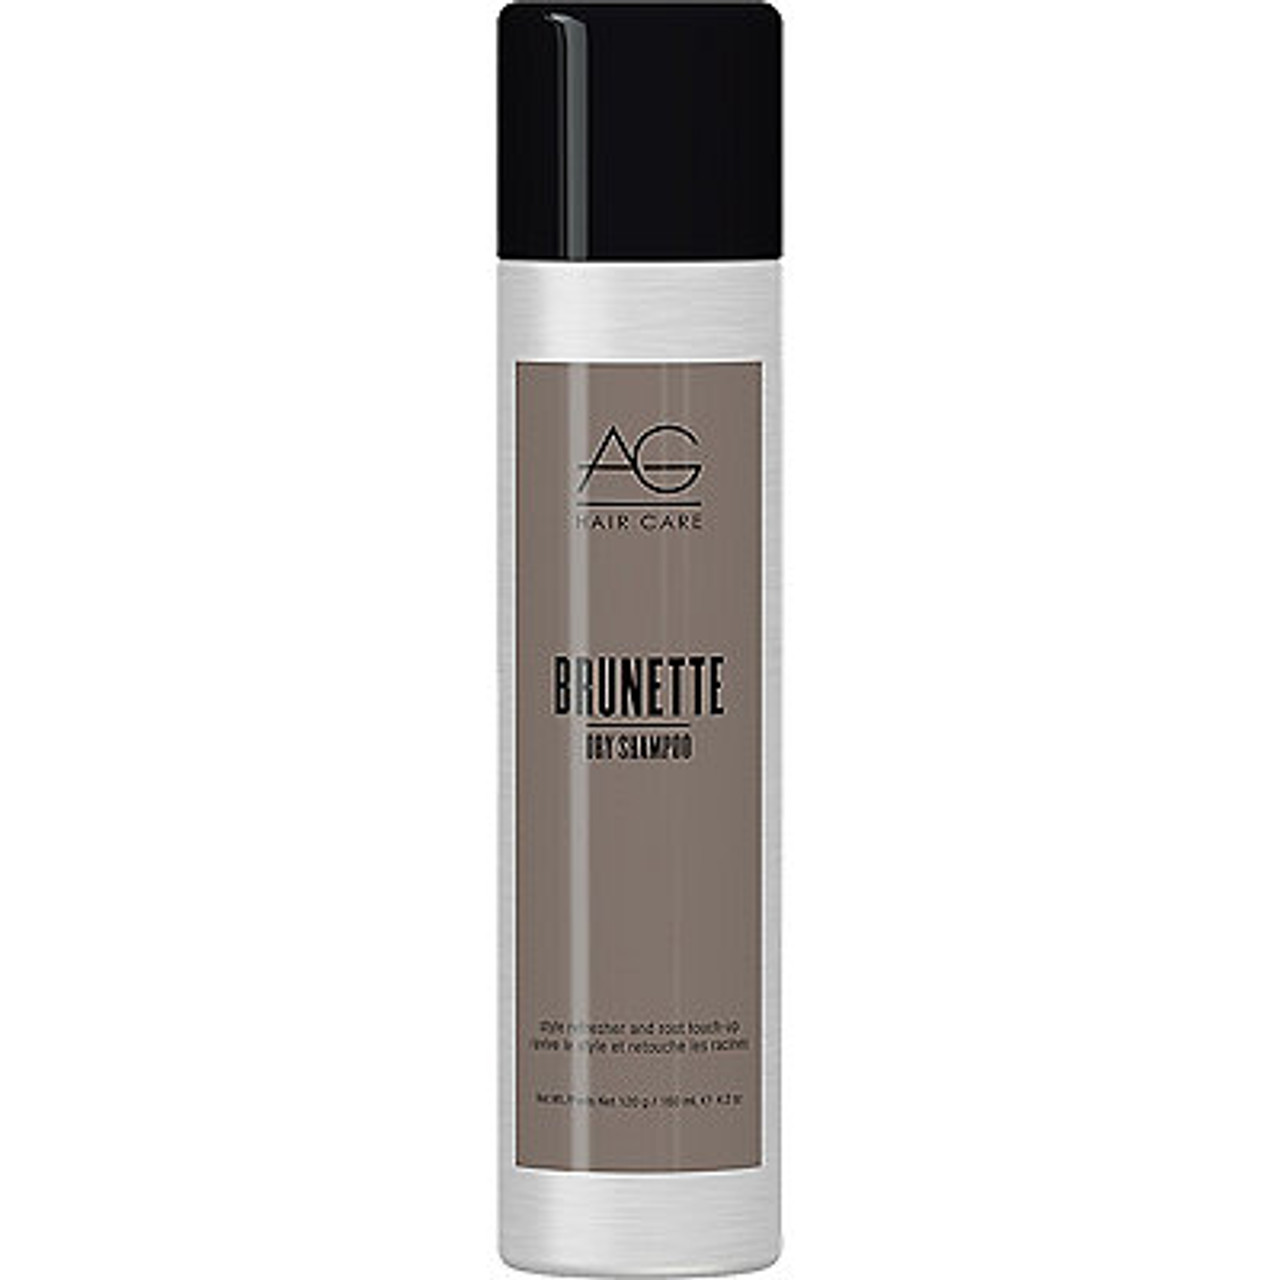 AG Hair Brunette Dry Shampoo, 4.2 oz